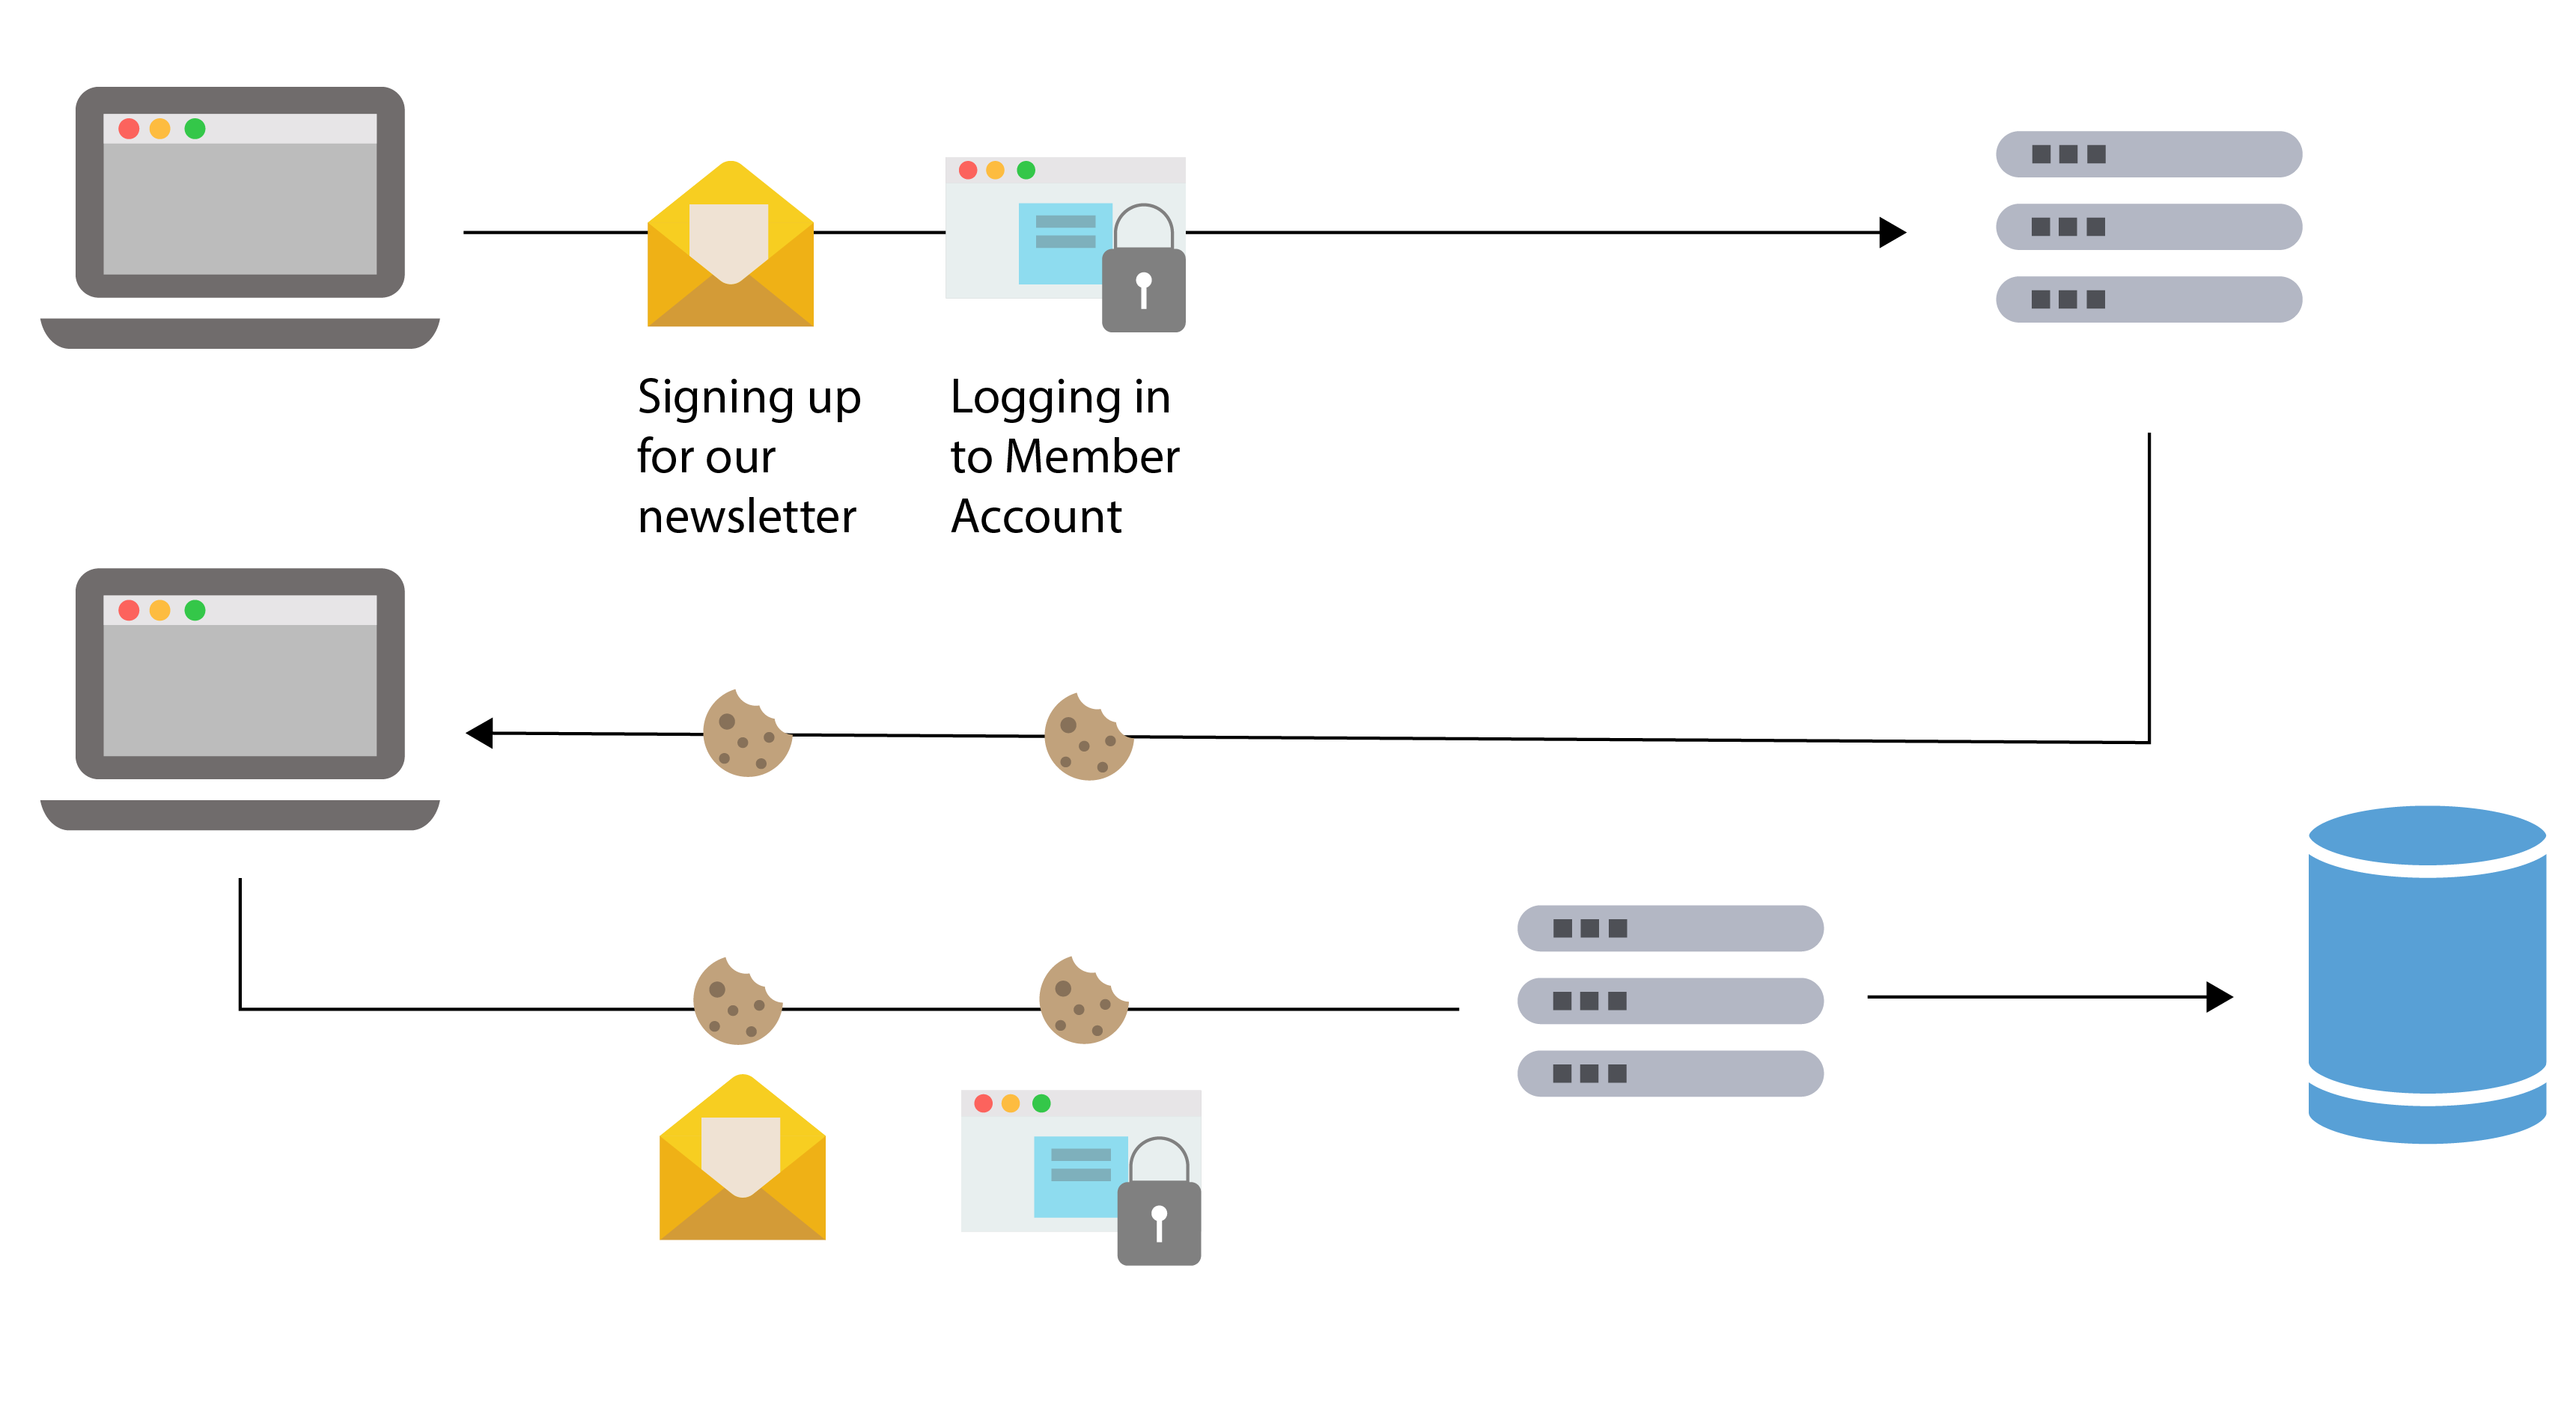 Cookies policy diagram